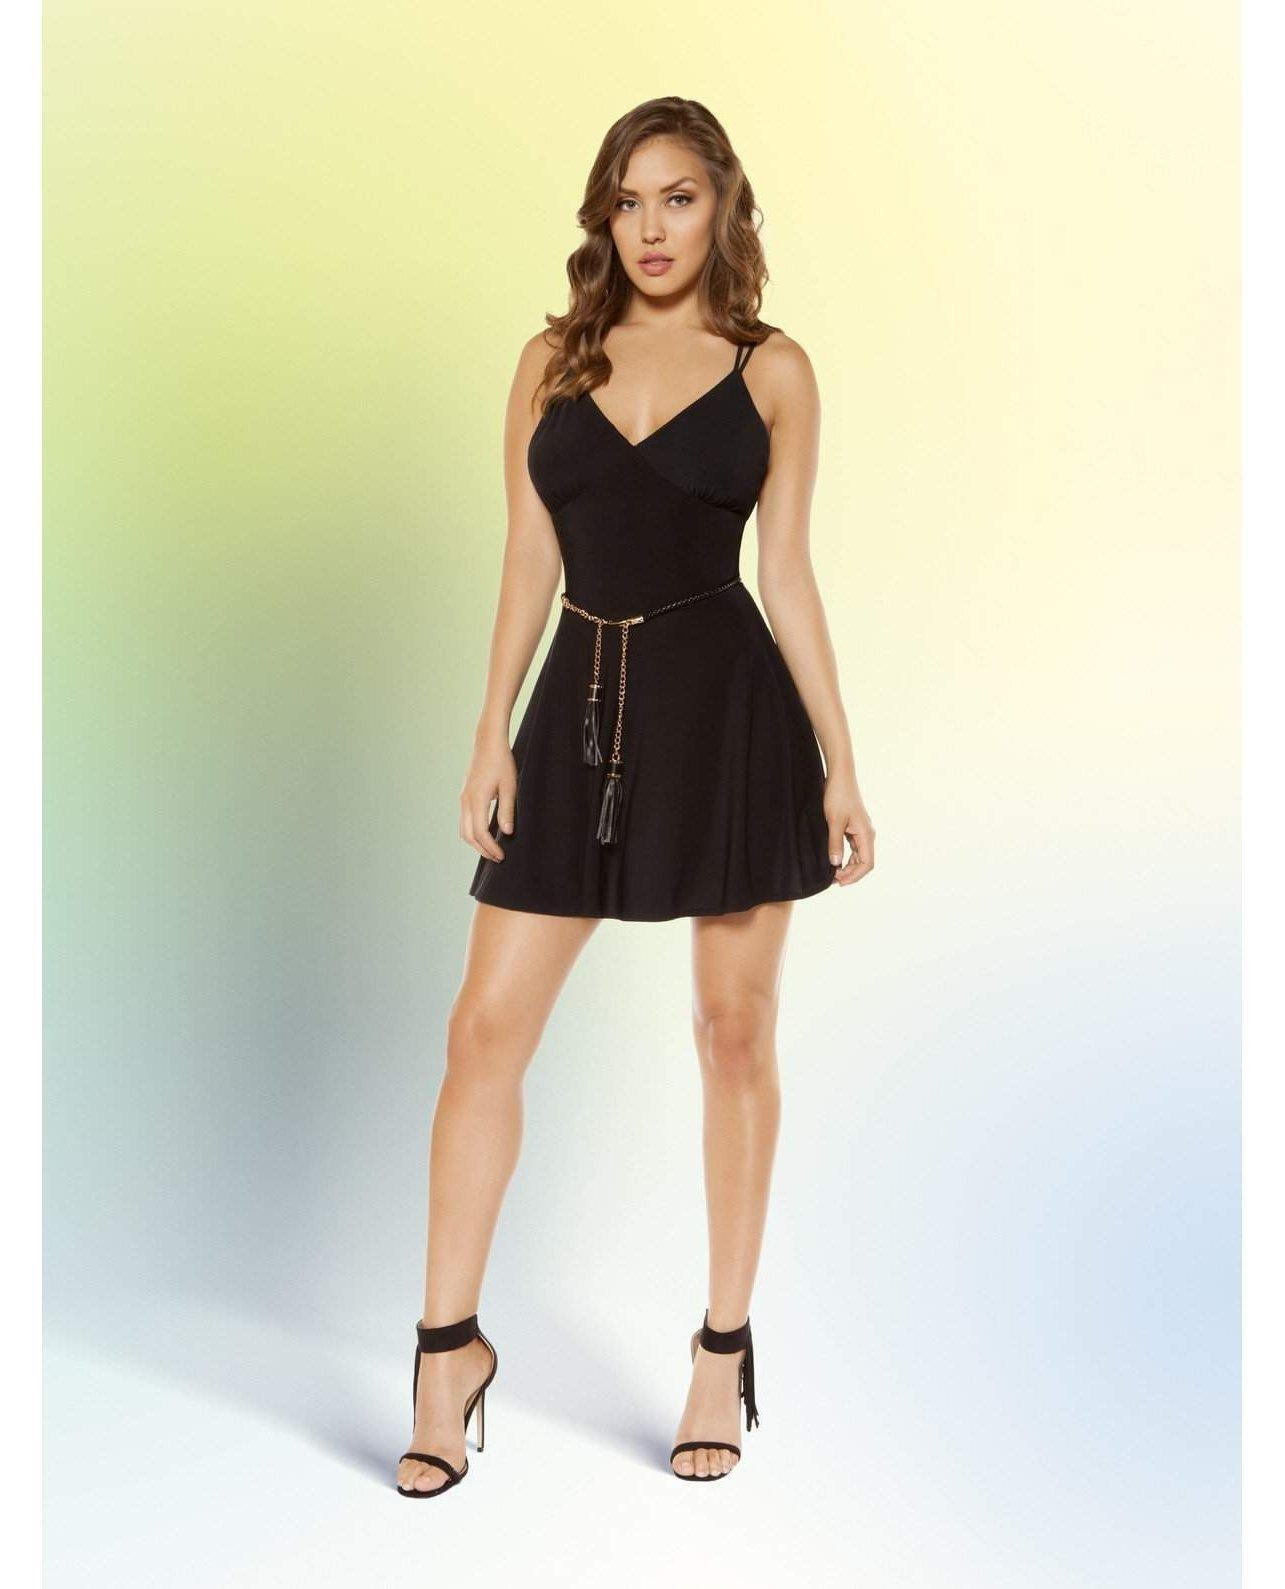 Partially Lined V-Neck Flared Mini Dress with Strappy Back Design club wear size smallcolor blackNakees